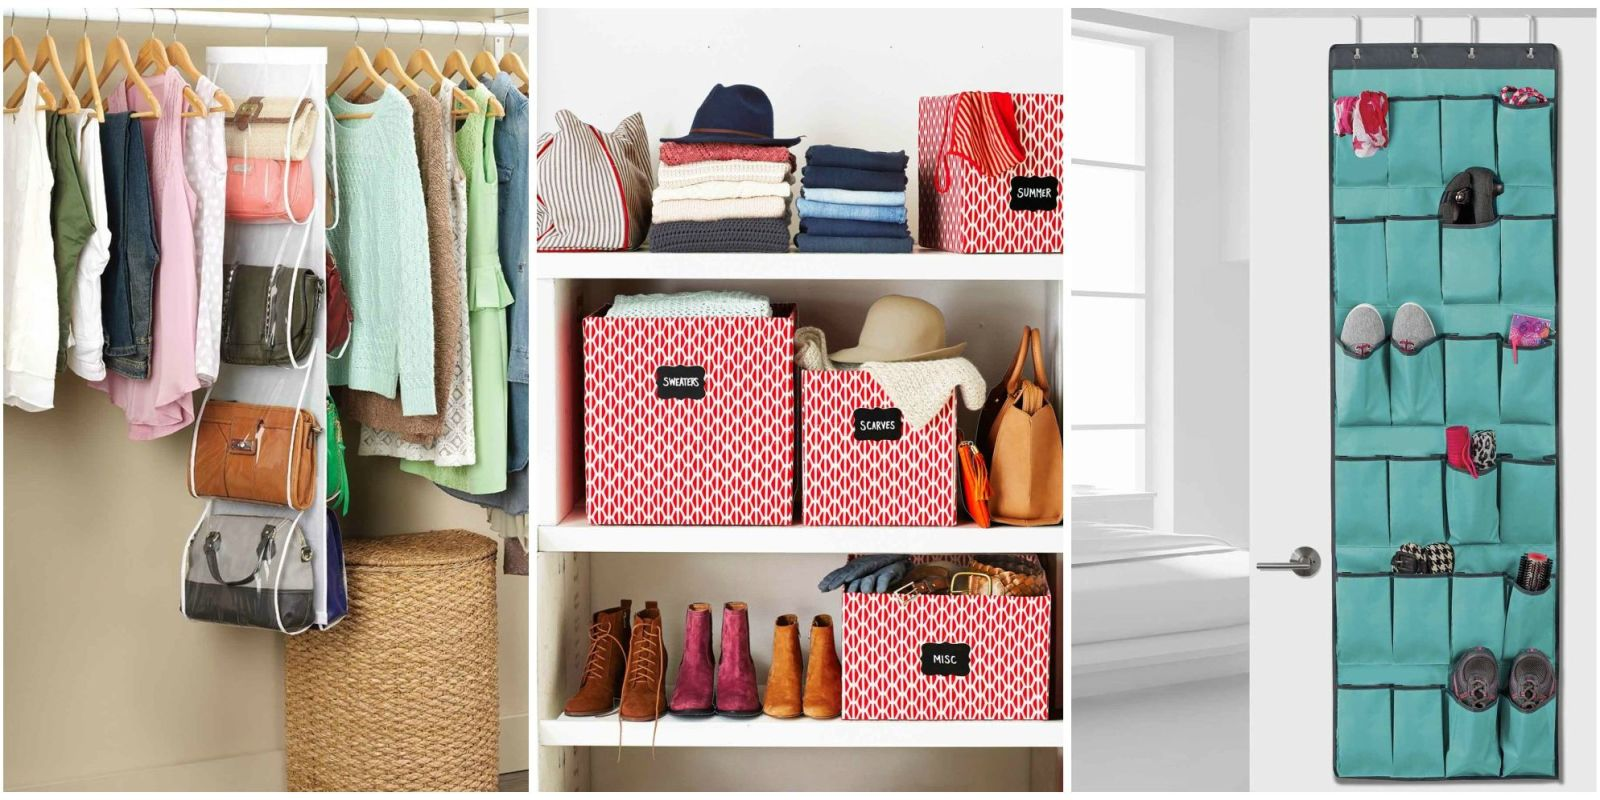 24 Best Closet Organization Storage Ideas How To